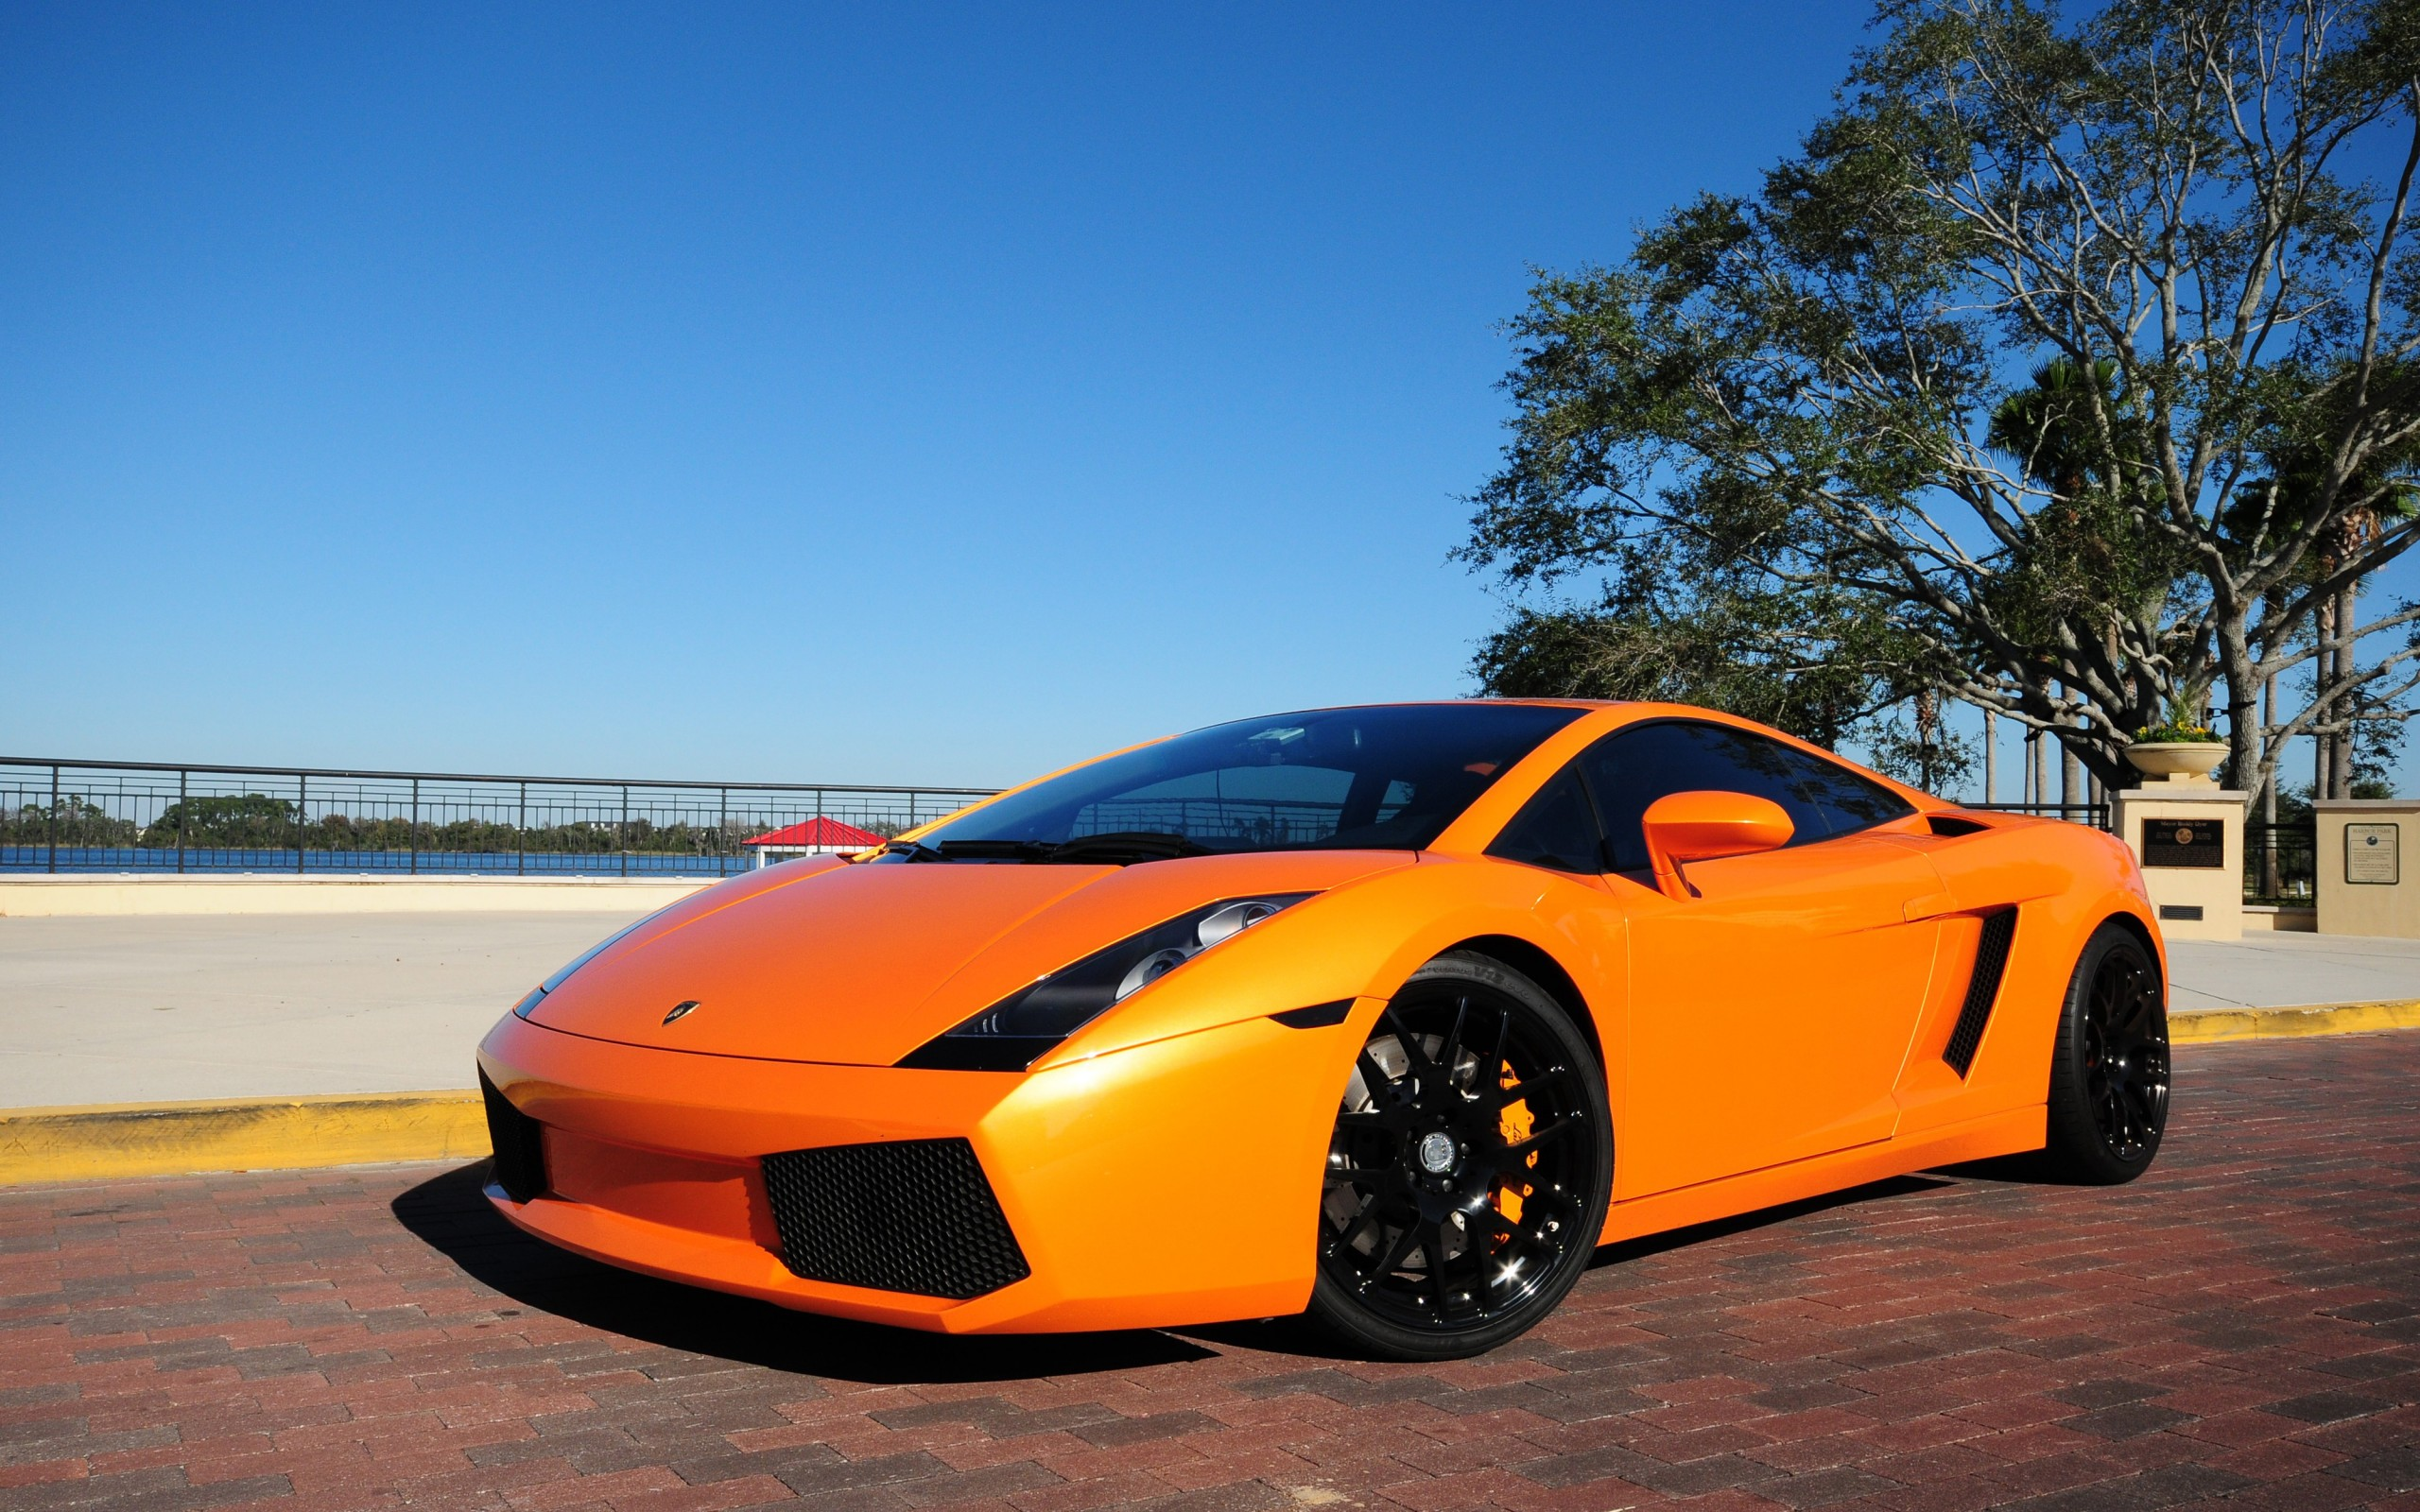 Mazda Of Orange >> Lamborghini Gallardo Orange Wallpaper | HD Car Wallpapers ...